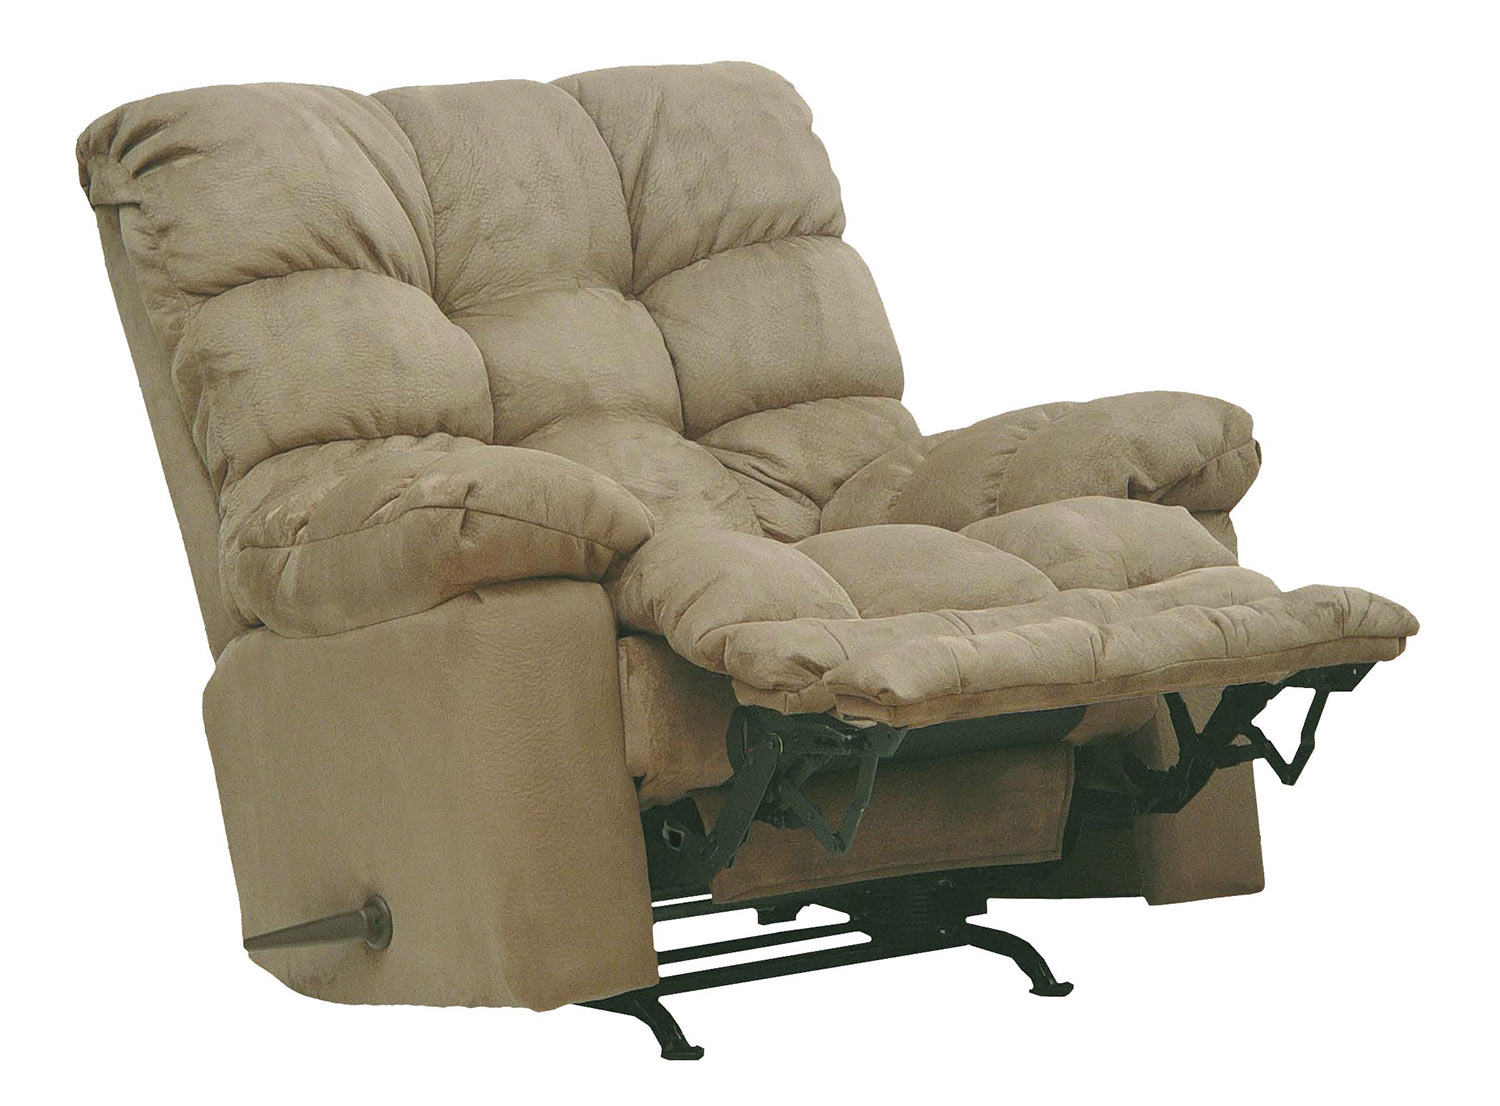 CatNapper Magnum Rocker Recliner Chair - Saddle